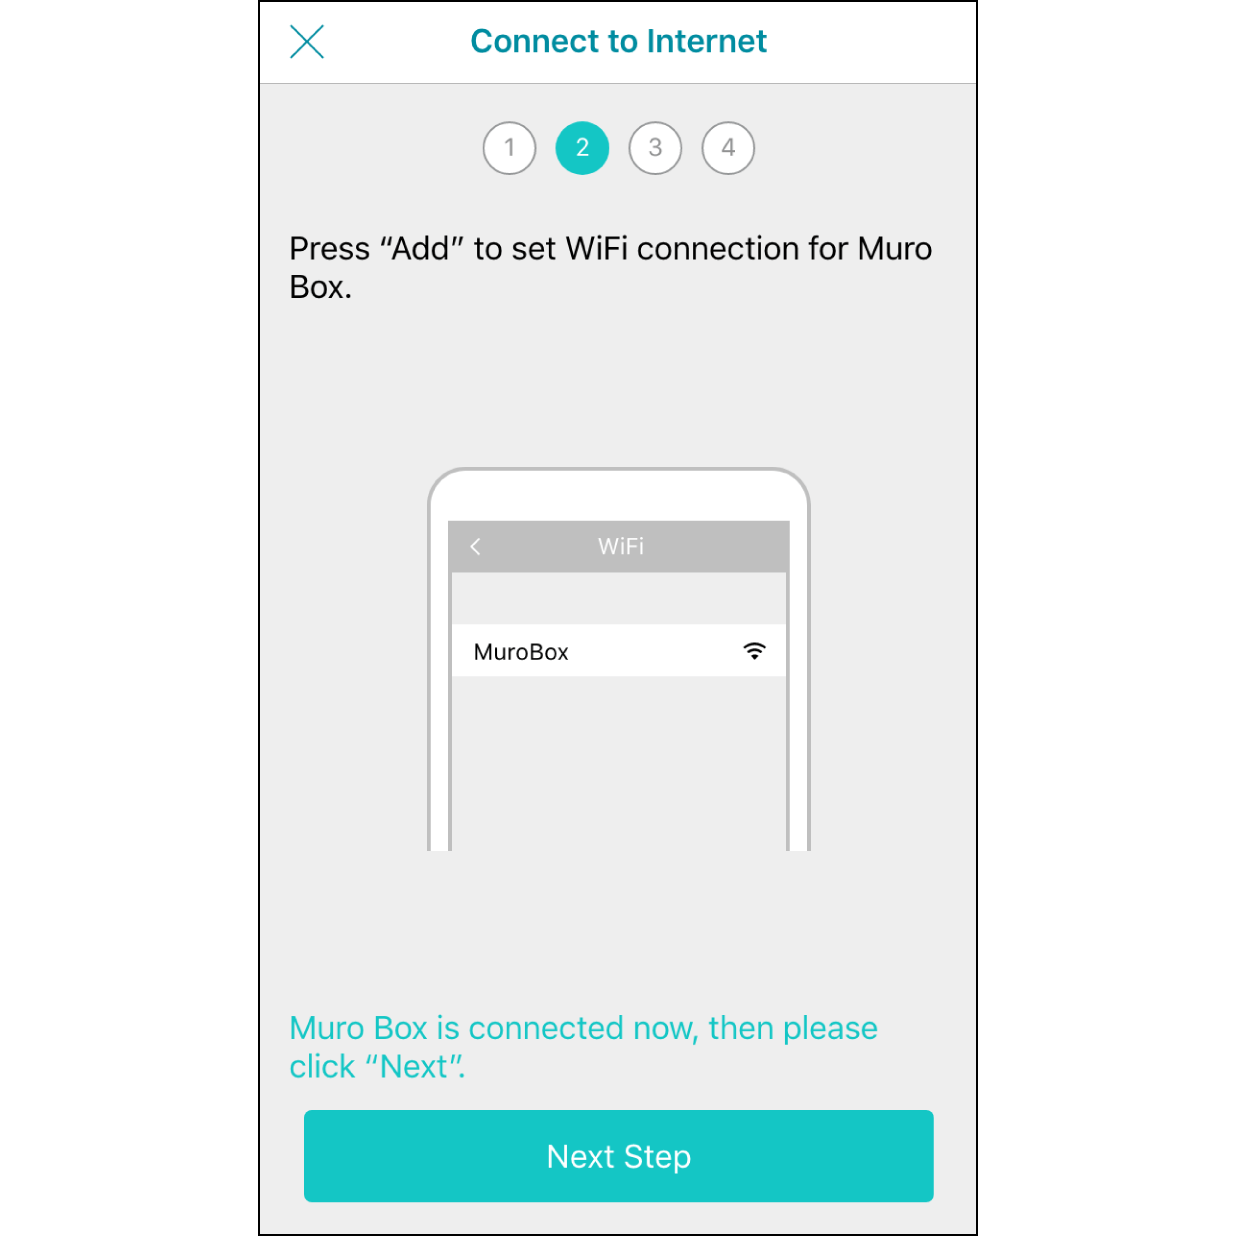 """6. Connected to Muro Box Wi-FiNavigate back to the Muro Box app, it will indicate """"Connected to Muro Box"""" soon, then hit """"Next""""."""